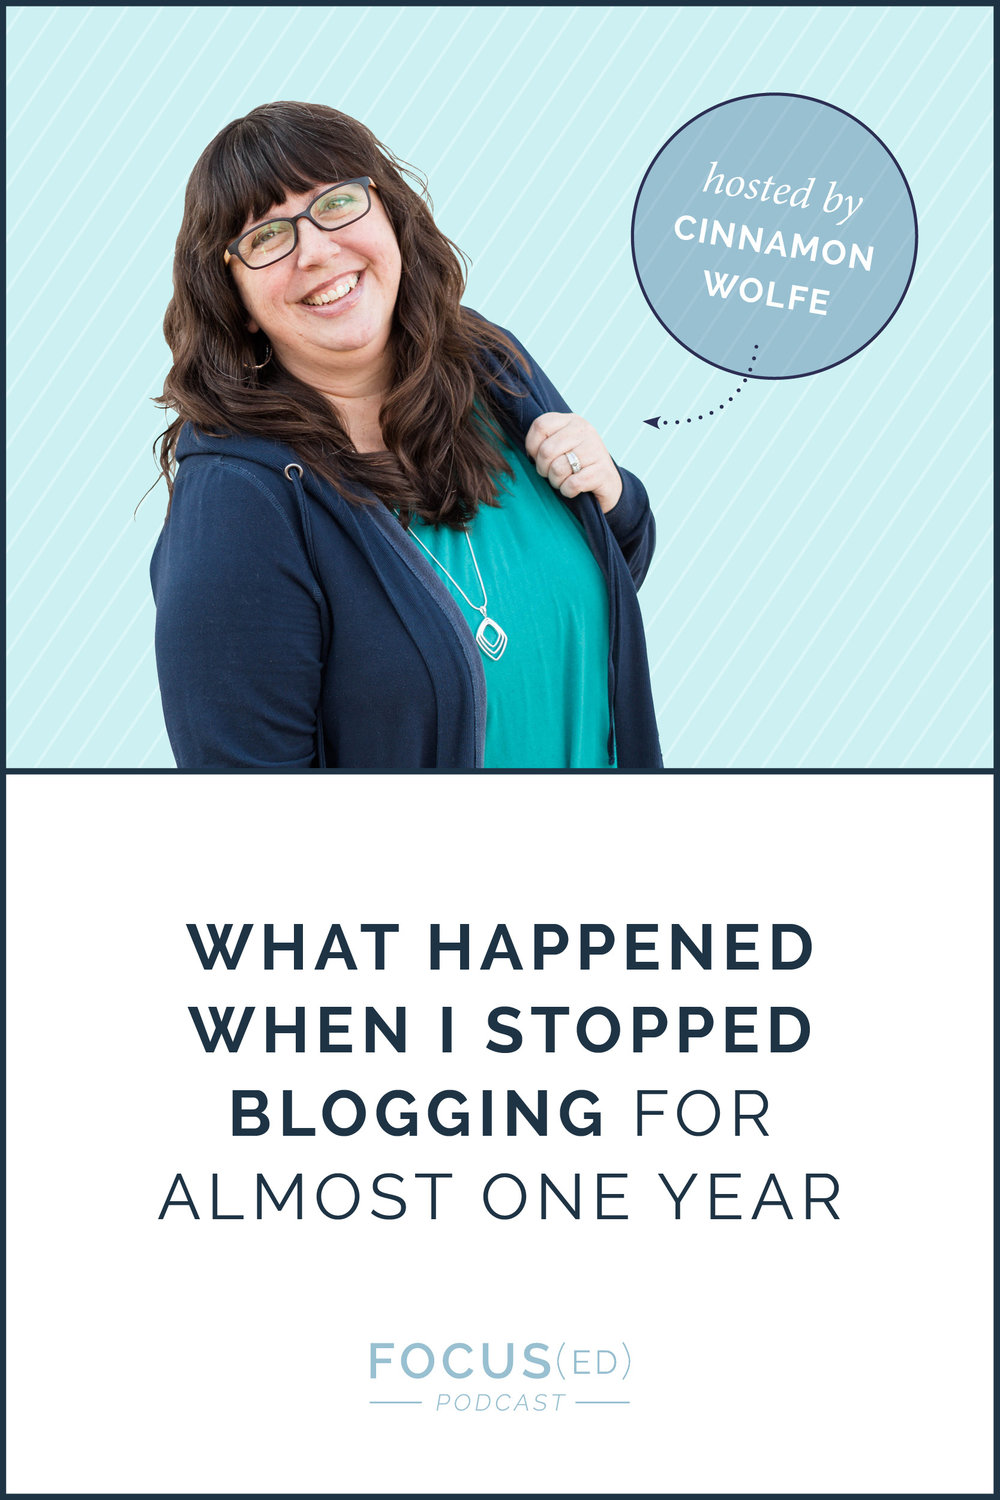 What happened when I stopped blogging for almost one year  |  Focused Podcast